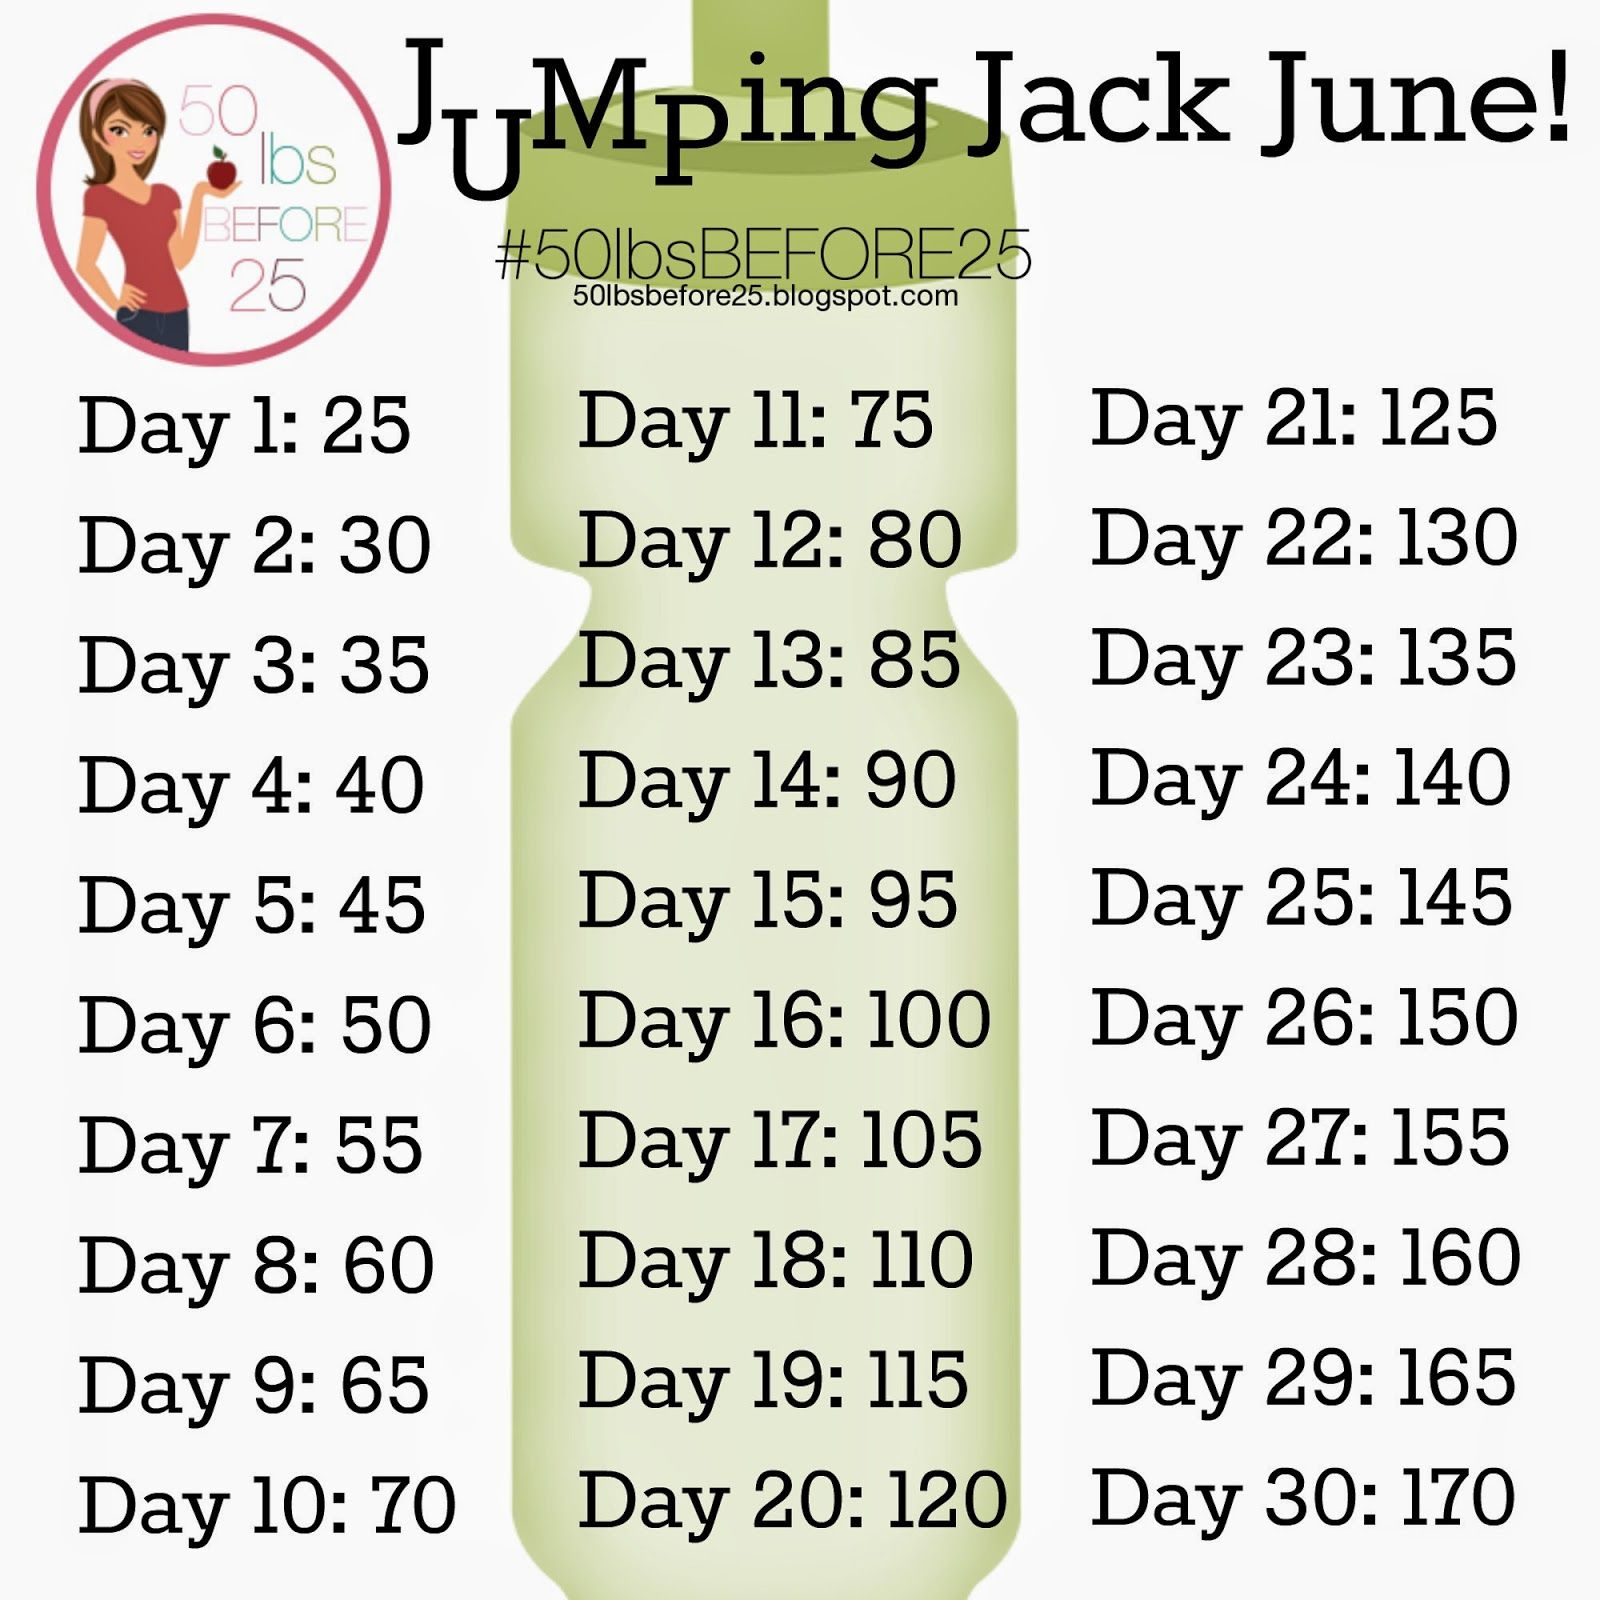 Jumping Jack June! | 50lbsbefore25 | Pinterest | Exercises ...